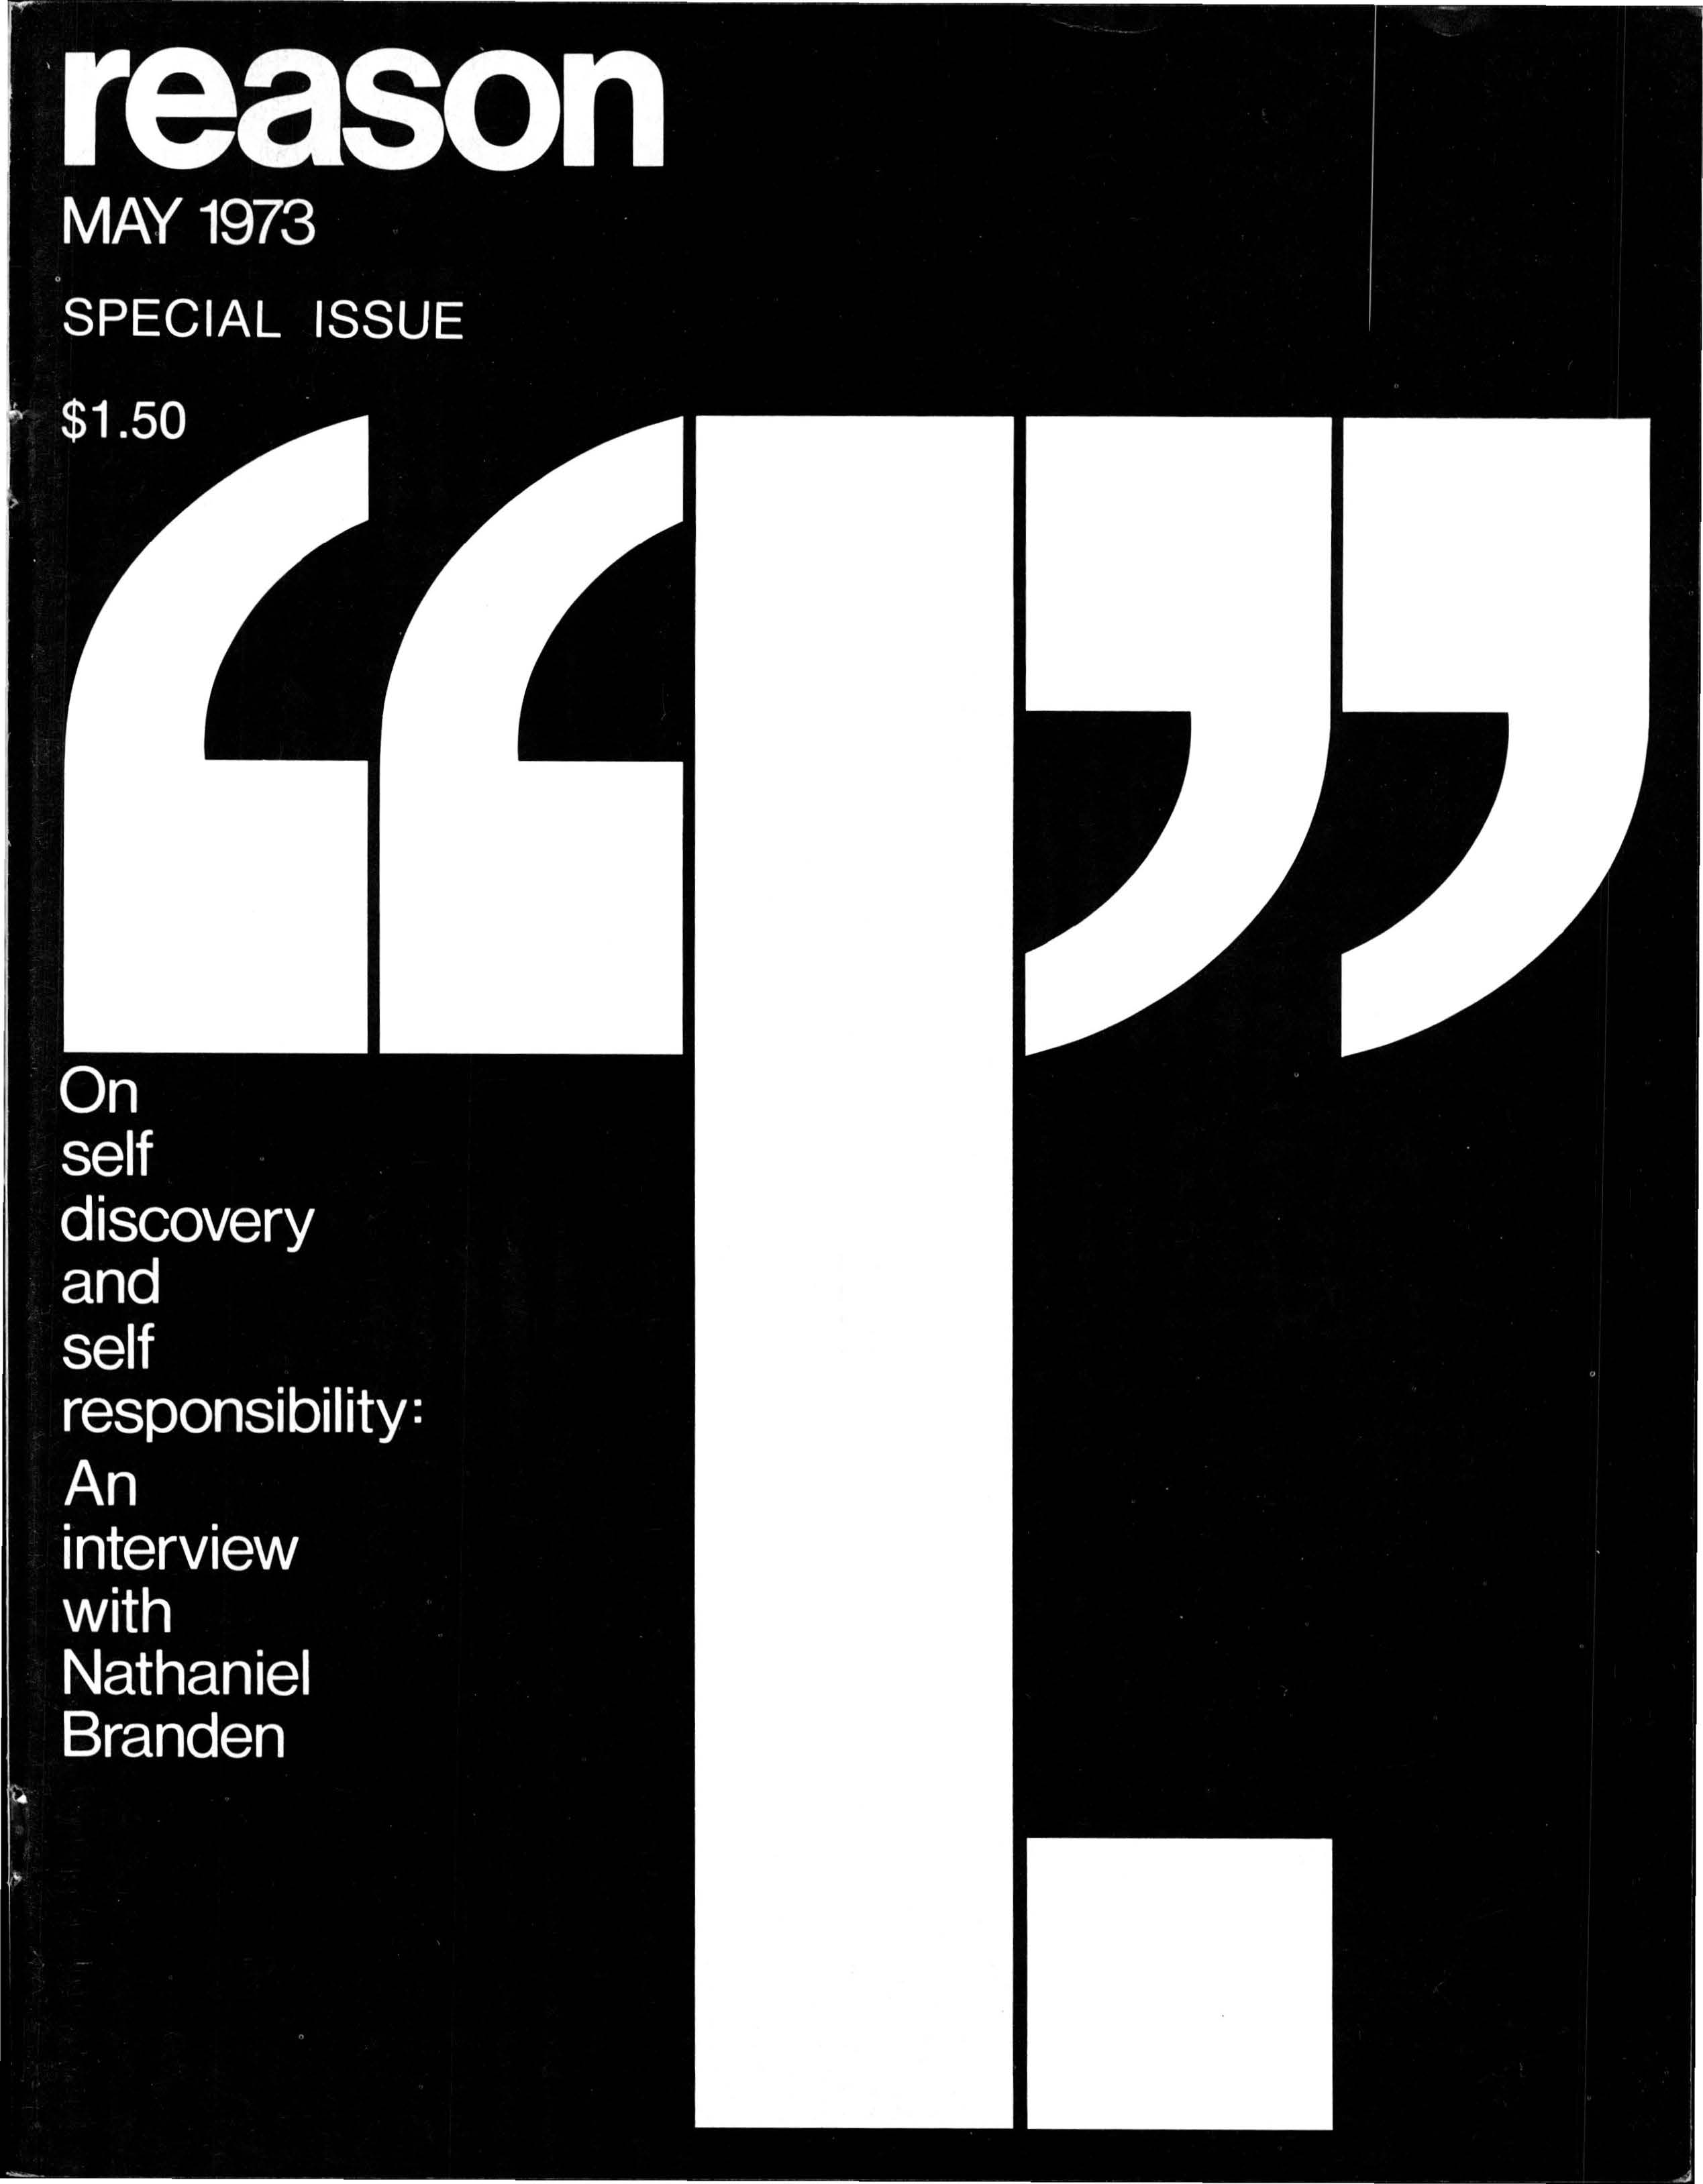 Reason Magazine, May 1973 cover image